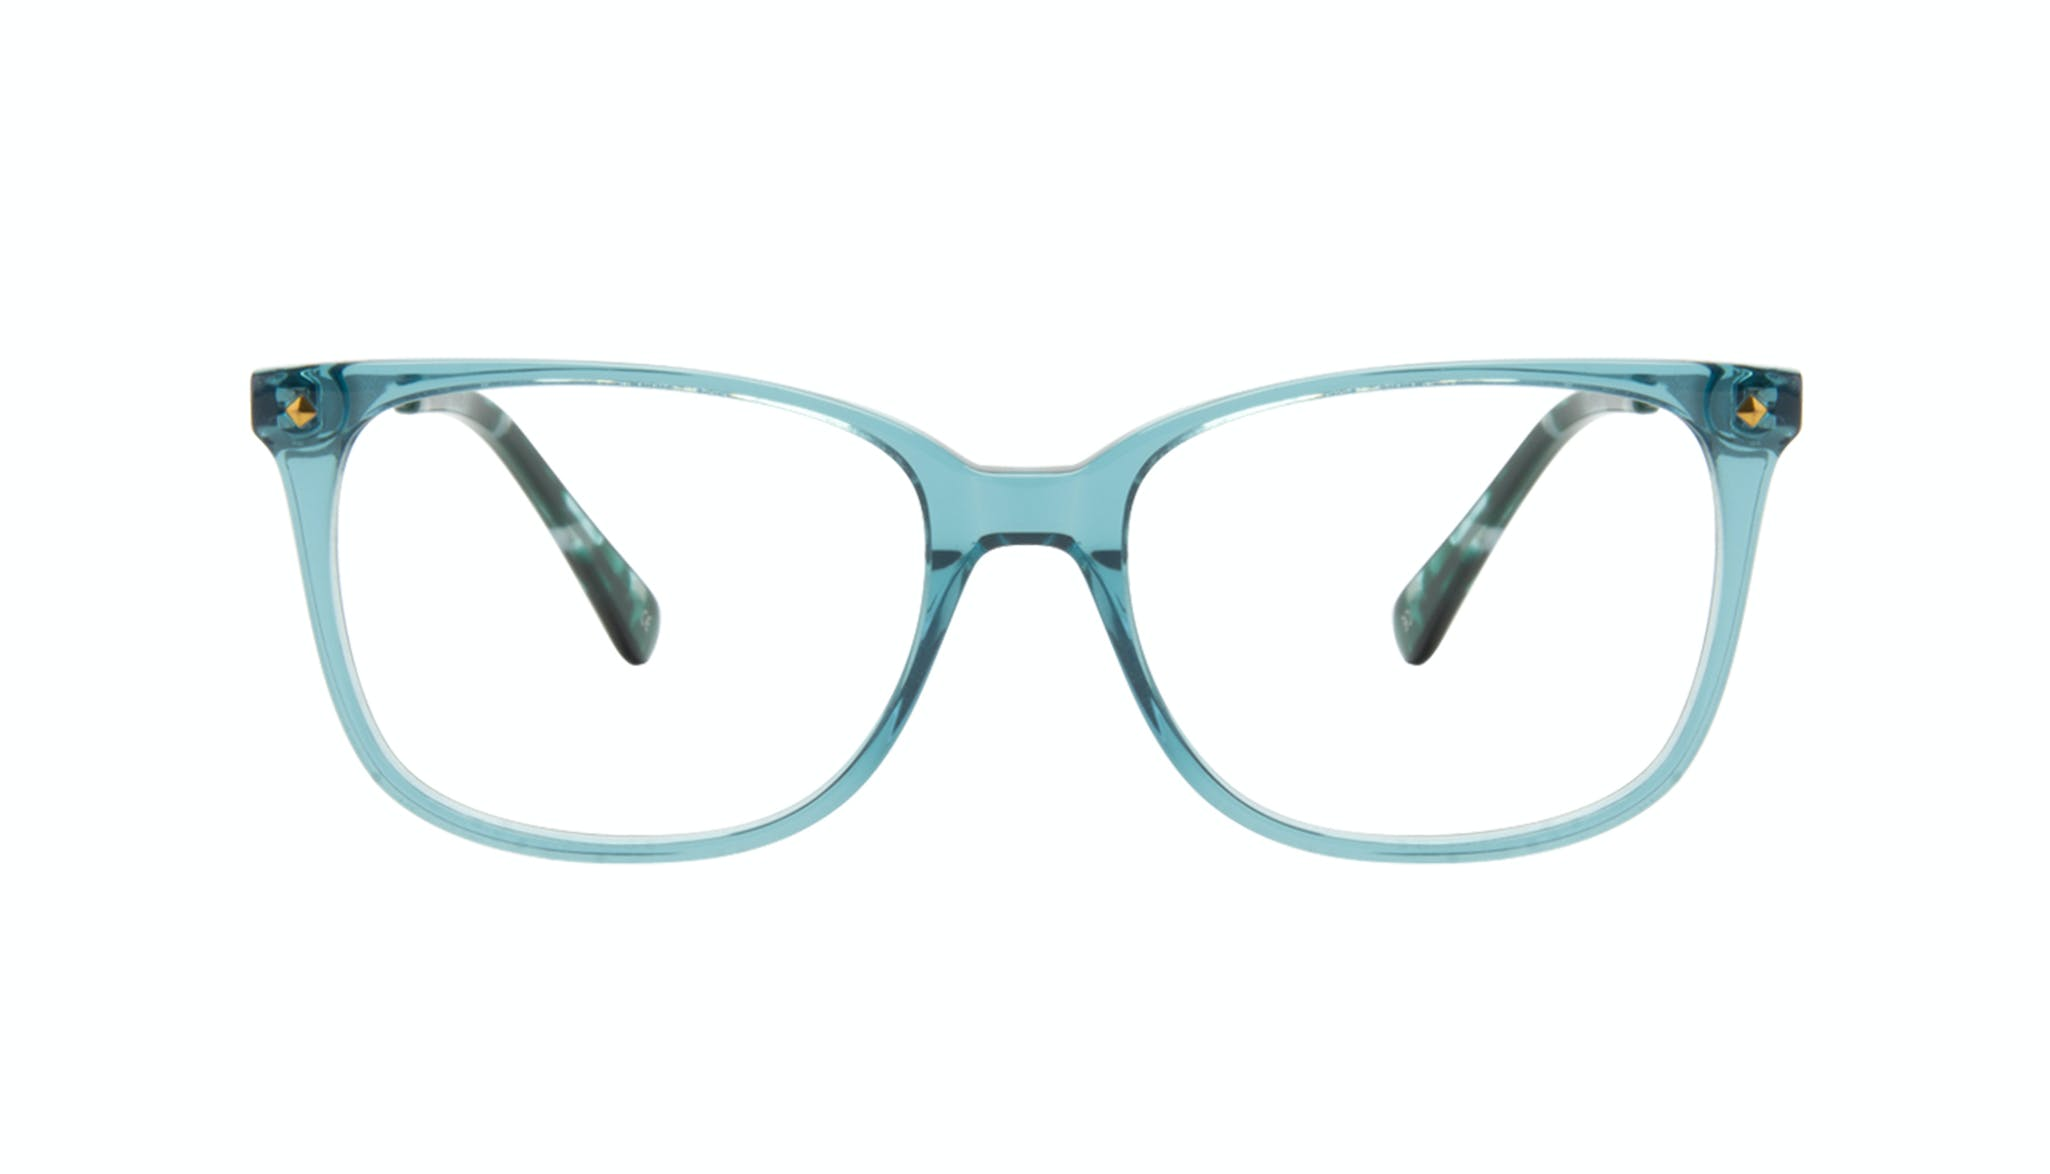 Affordable Fashion Glasses Rectangle Square Eyeglasses Women Refine Teal